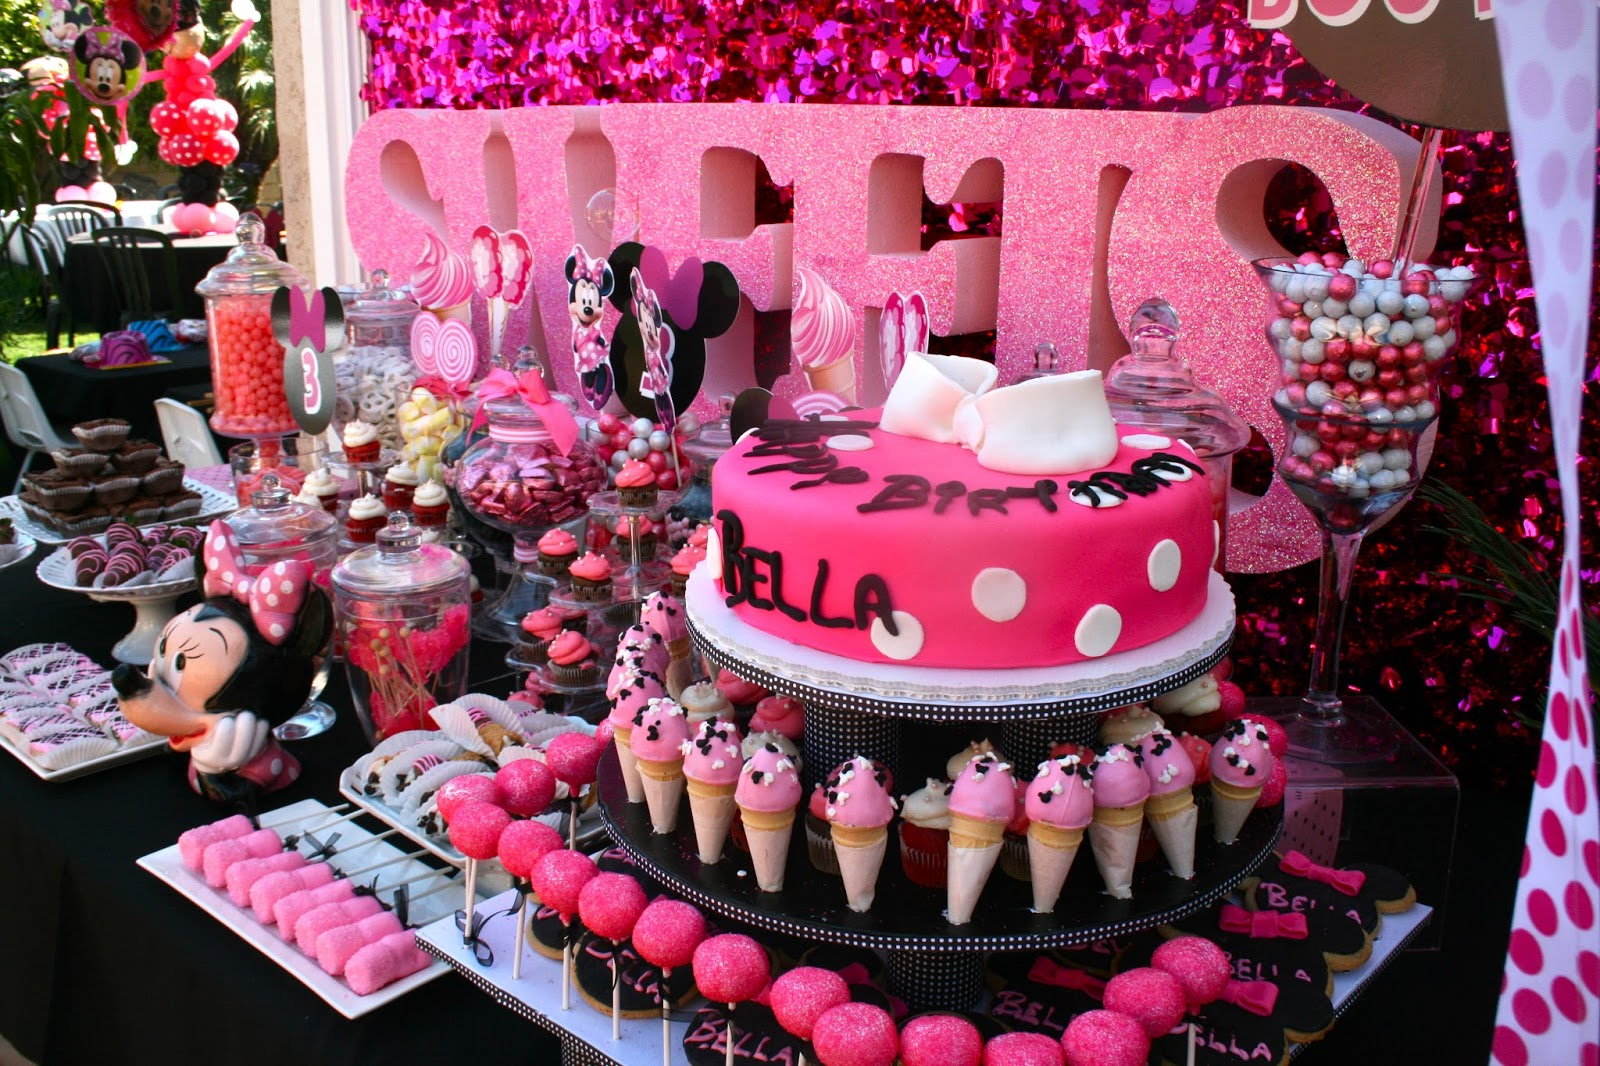 Custom Decor Desserts Disney Theme Favors Hollywood Candy Girls Minnie Mouse Birthday Party Ideas Outrageous Kids Parties Pink Buffet Bar